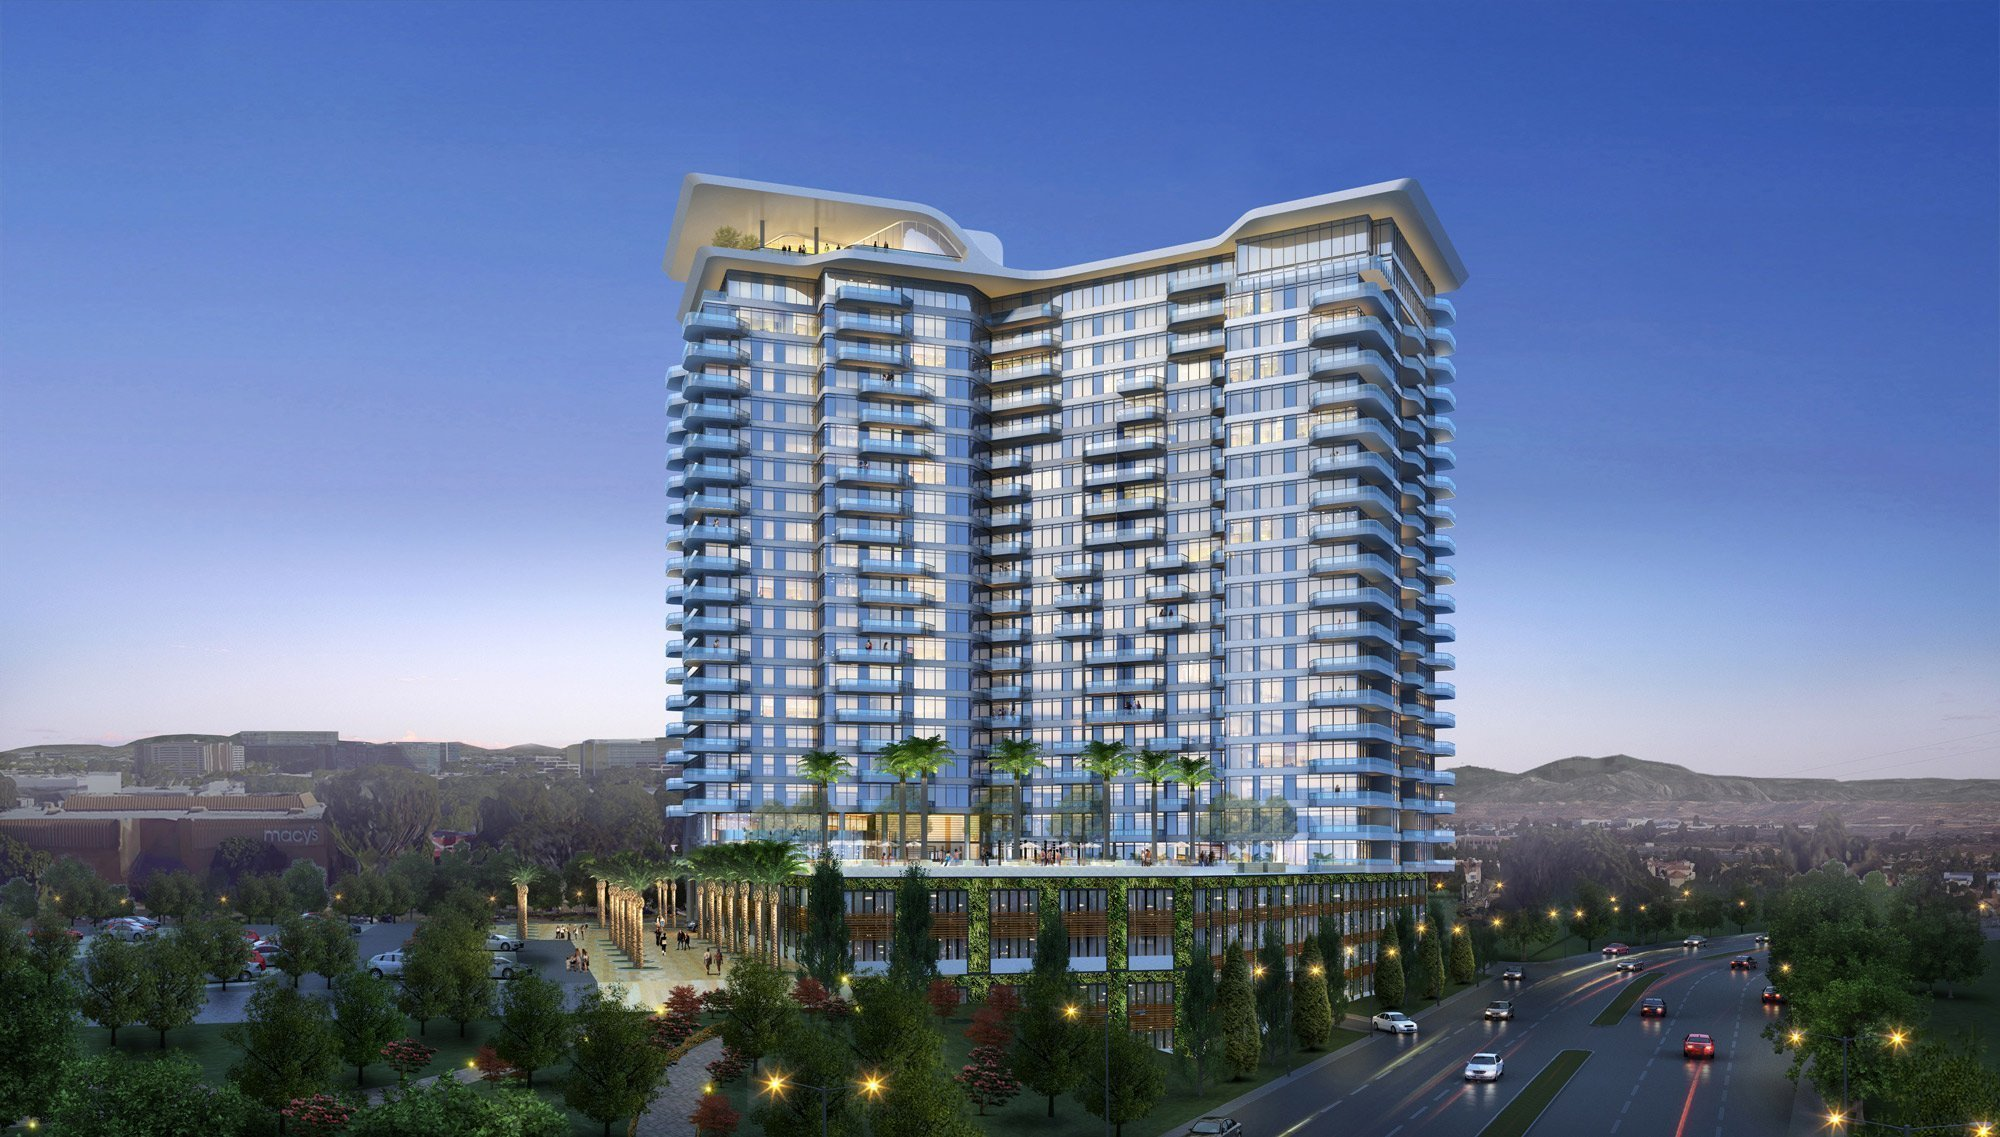 westfield utc mall starts construction on apartment building on site